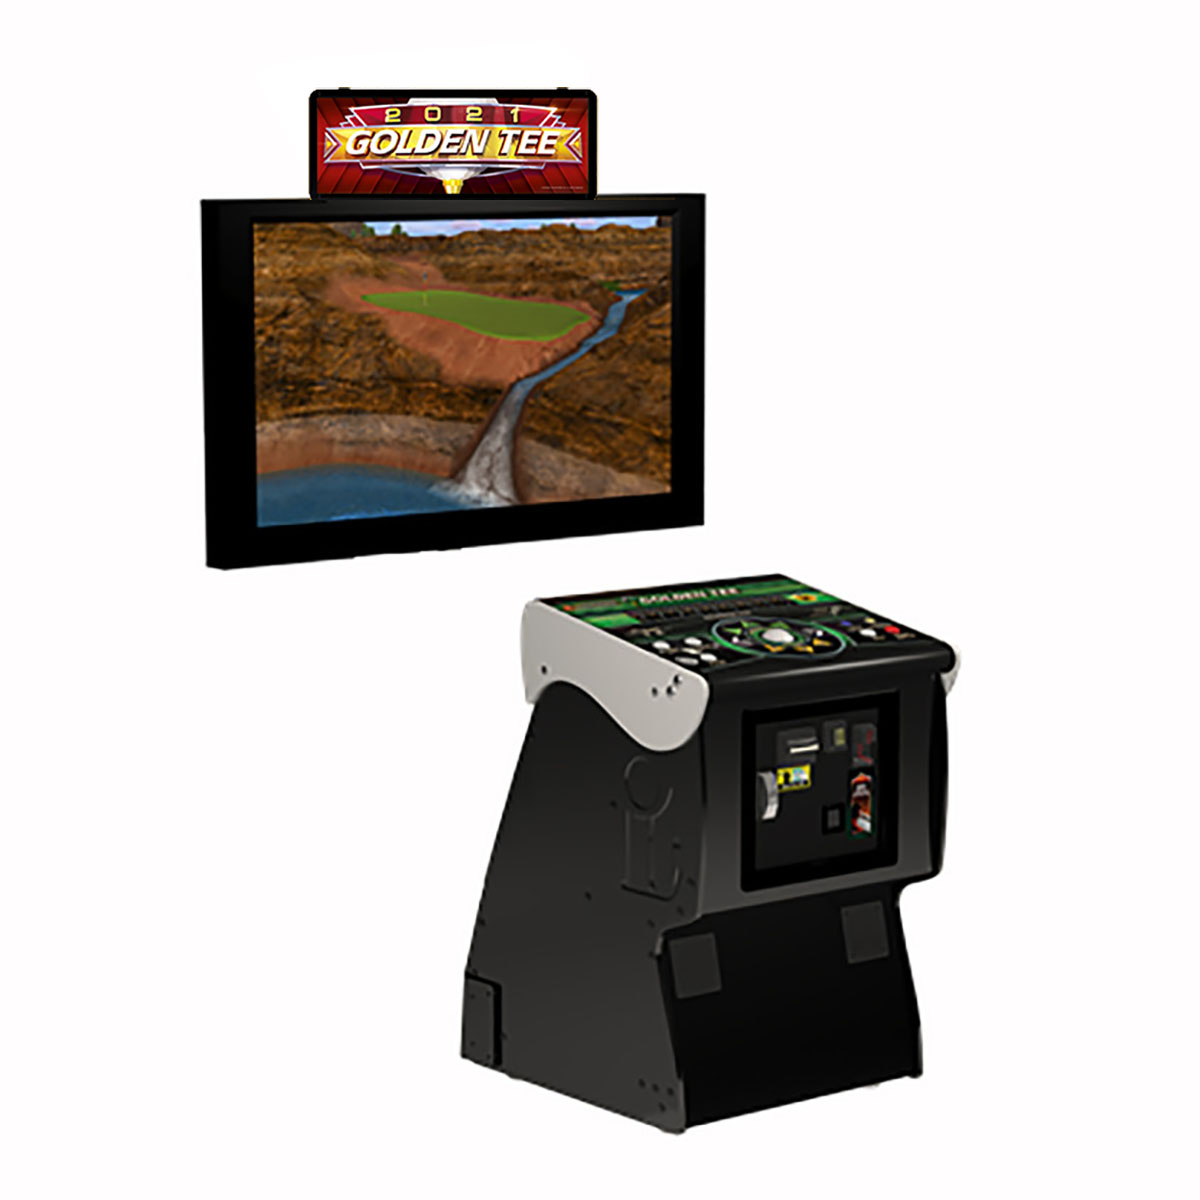 Golden Tee Arcade Games For Sale In Metro Detroit | Game Room Guys